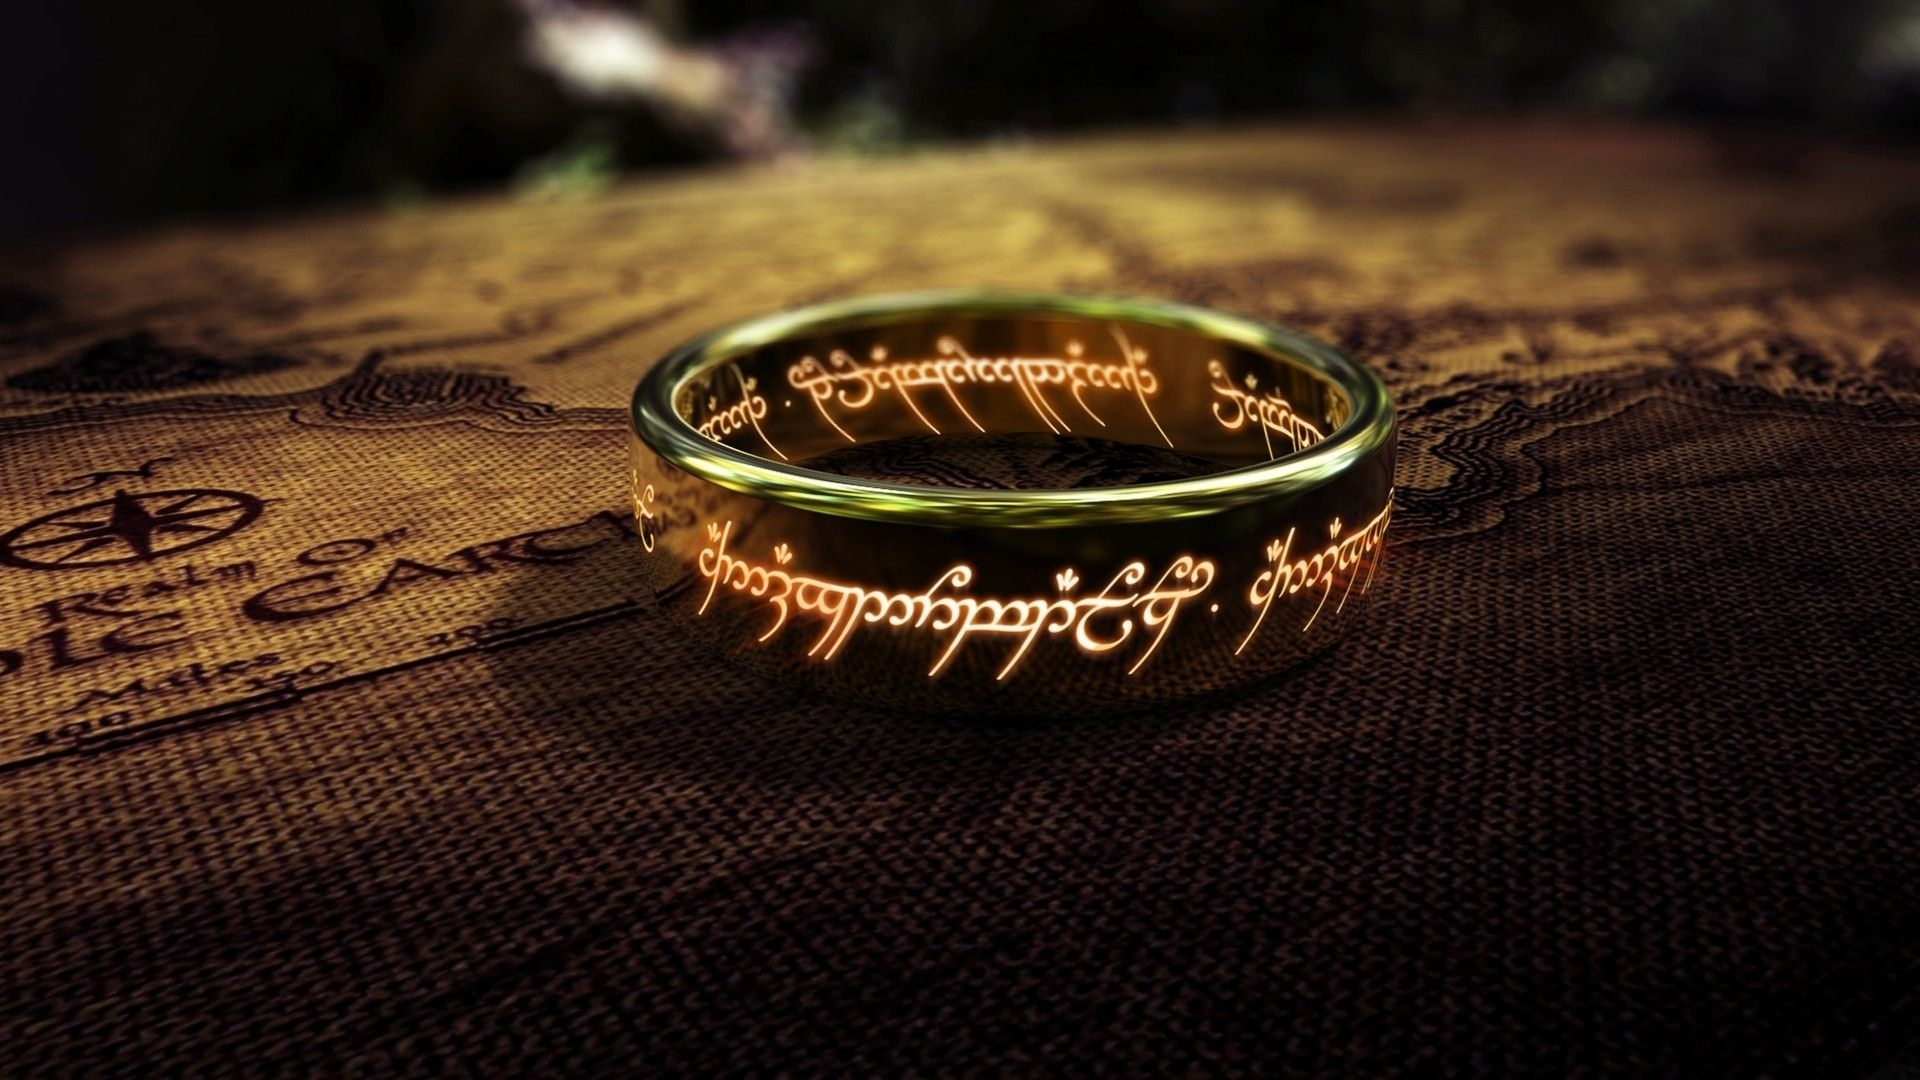 the lord of the rings engraving hd wallpaper » fullhdwpp - full hd